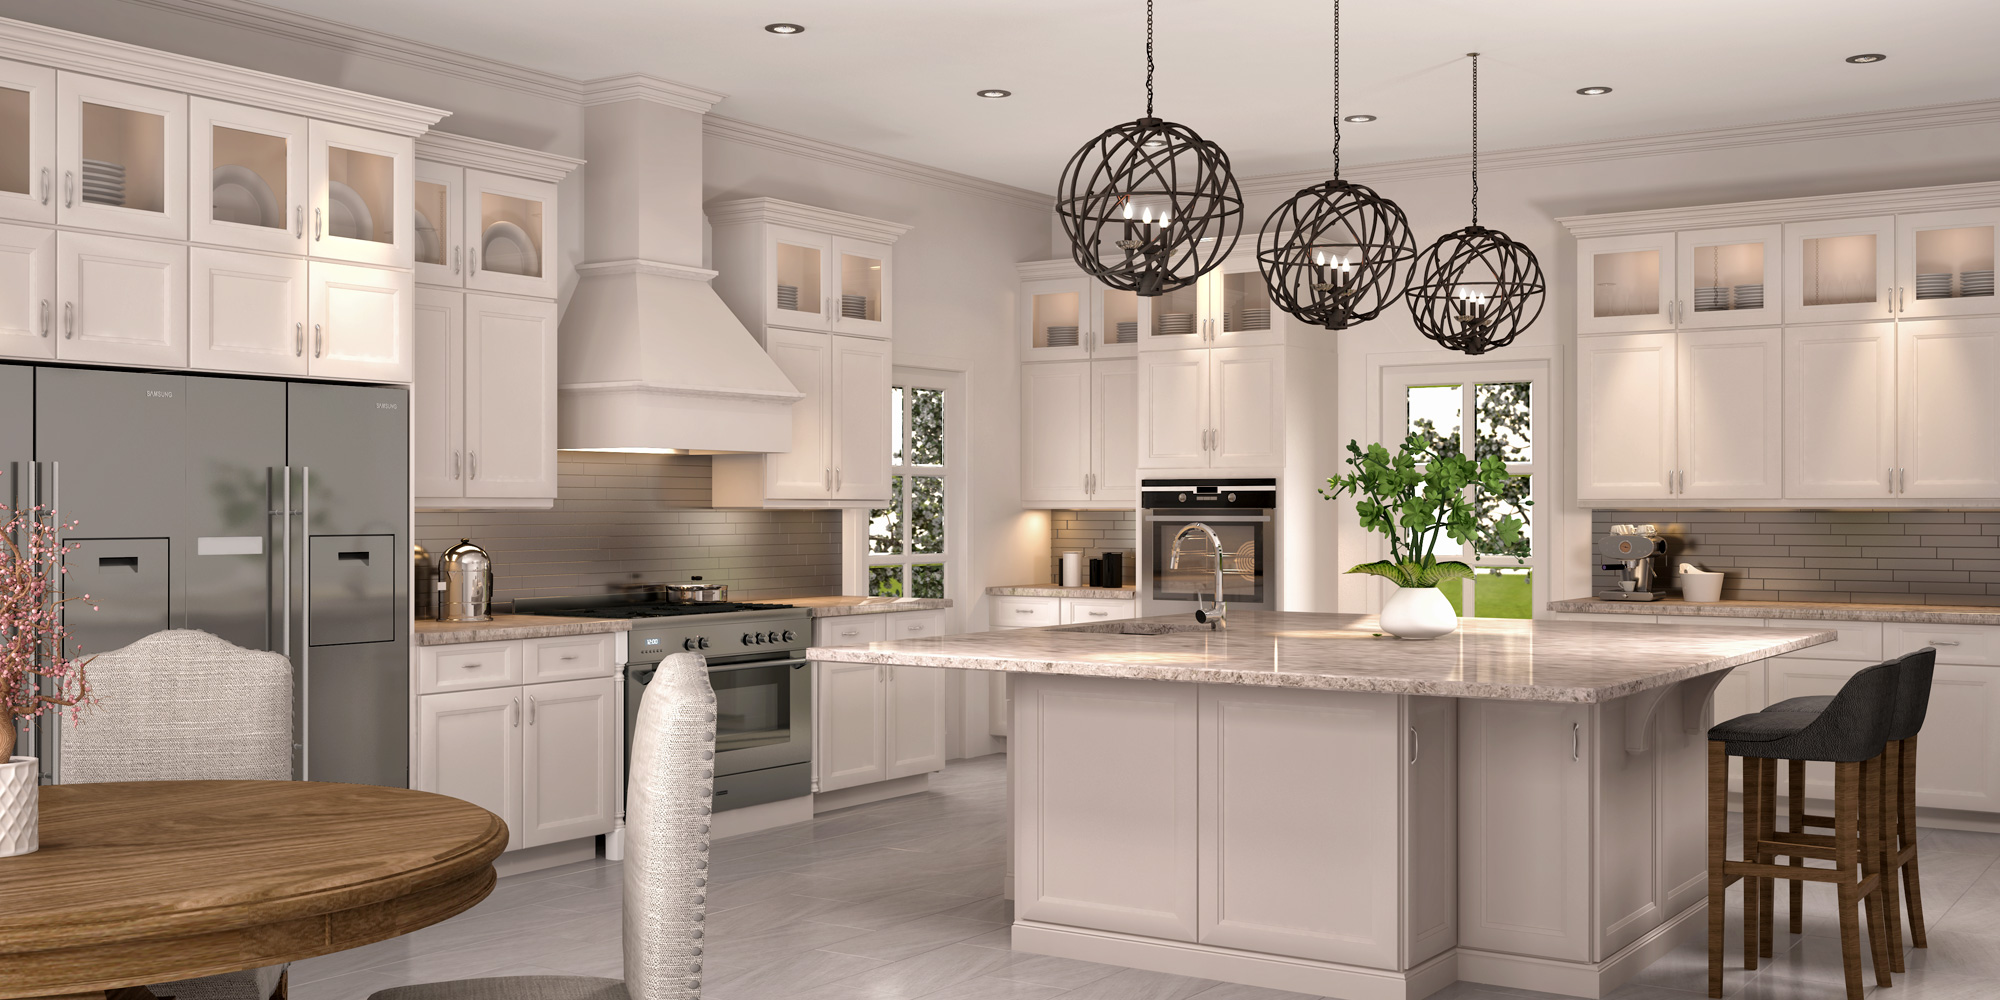 kitchen remodeling and renovation experts in queen ny | dna kitchens